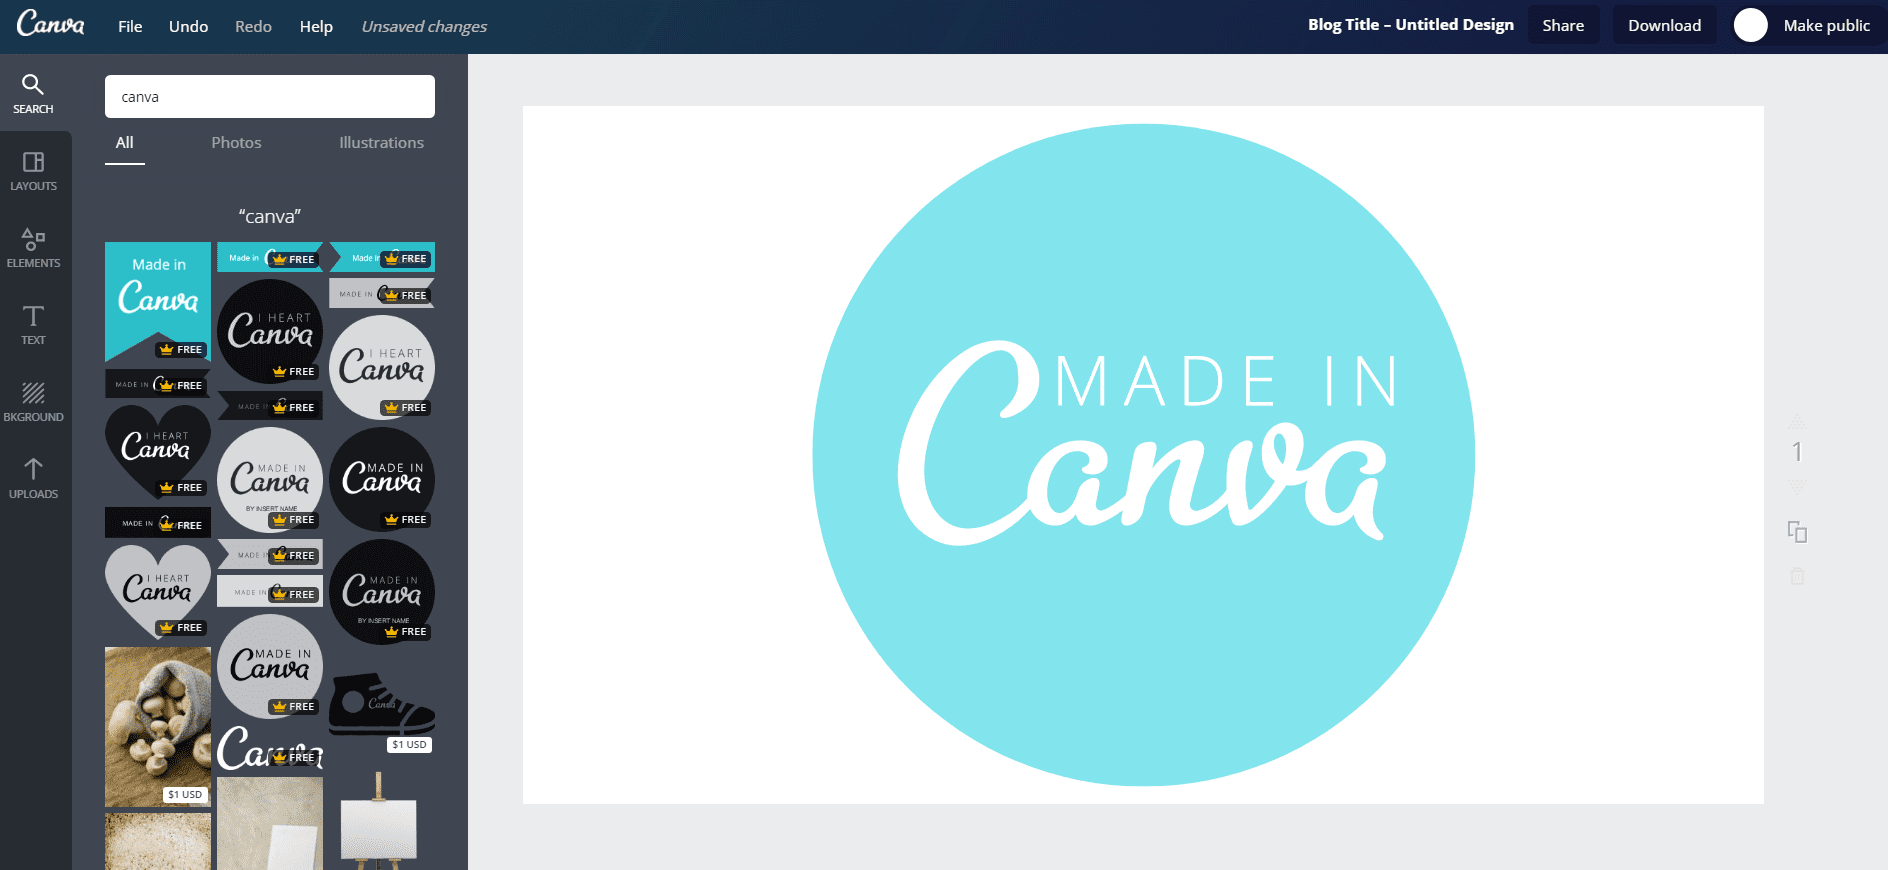 example of creating a design in Canva photo editing and creation web tool